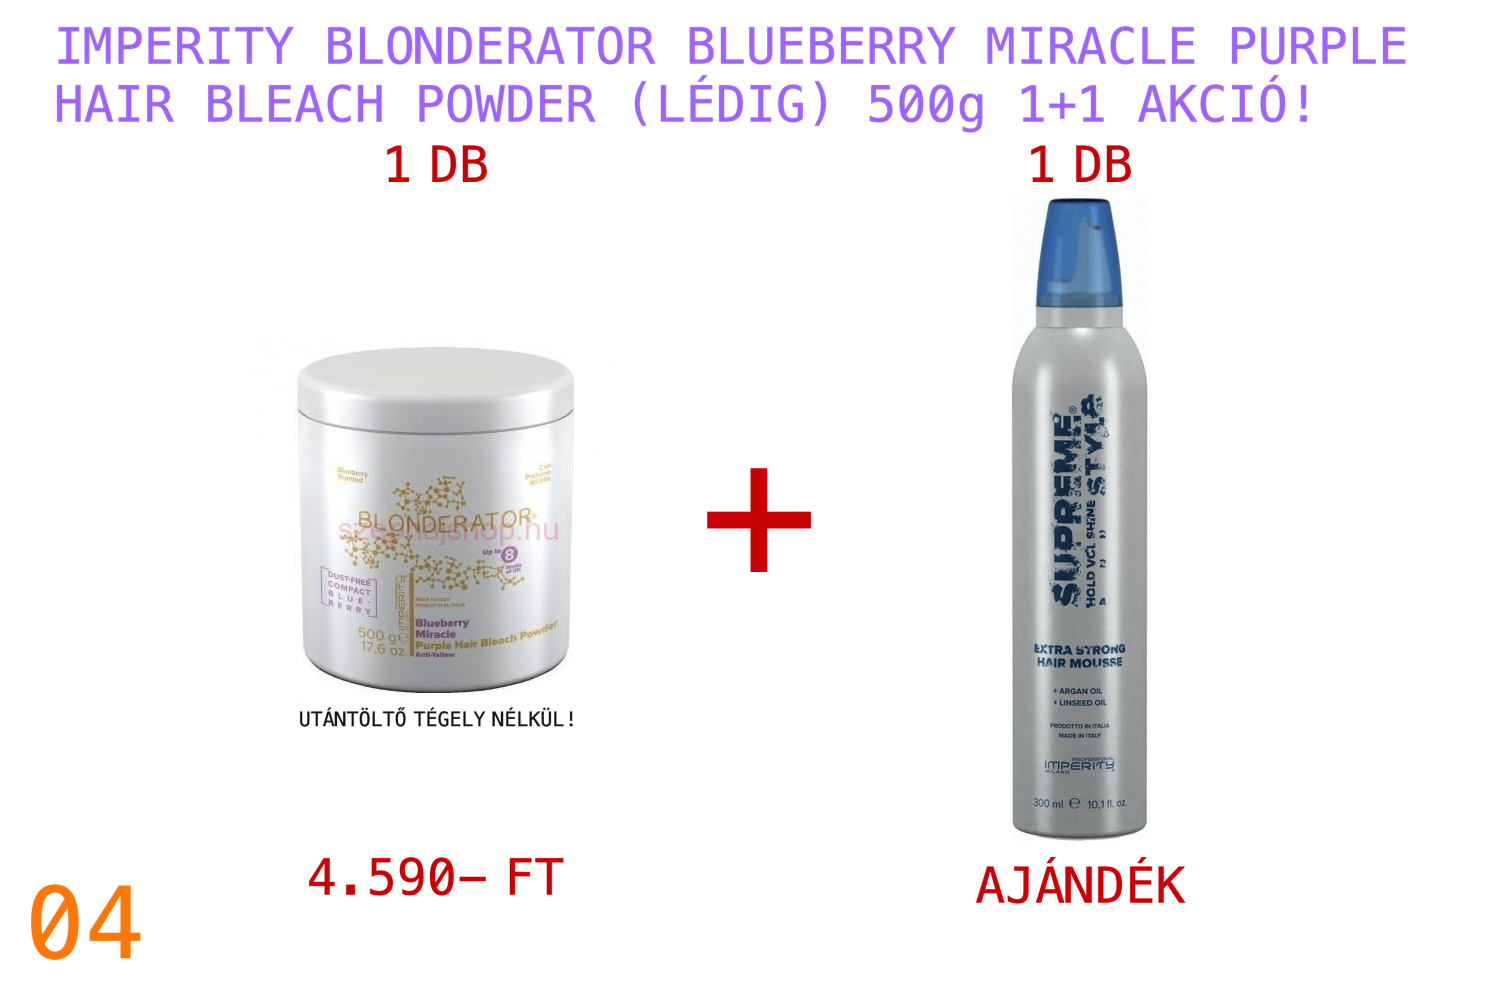 IMPERITY Blonderator Blueberry Miracle Purple Hair Bleach Powder 500 g 1+1 AKCIÓ